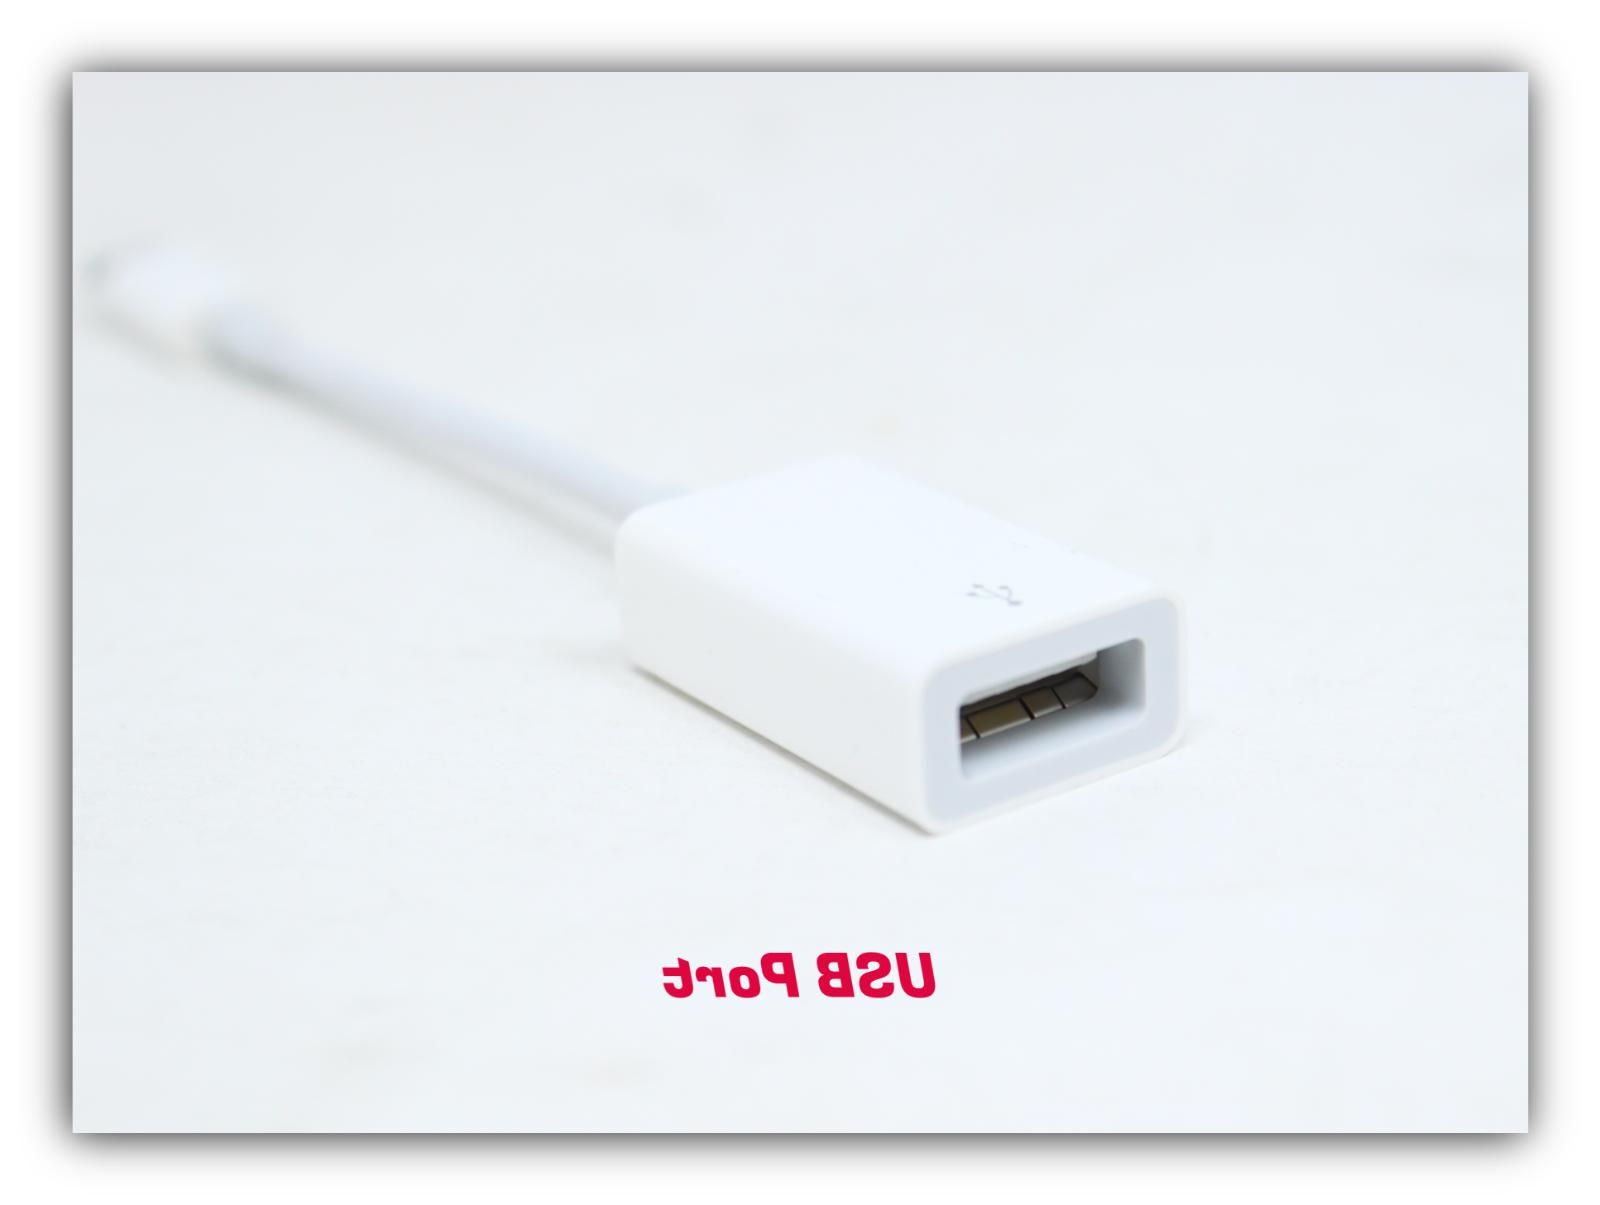 Genuine Apple USB Model # A1632